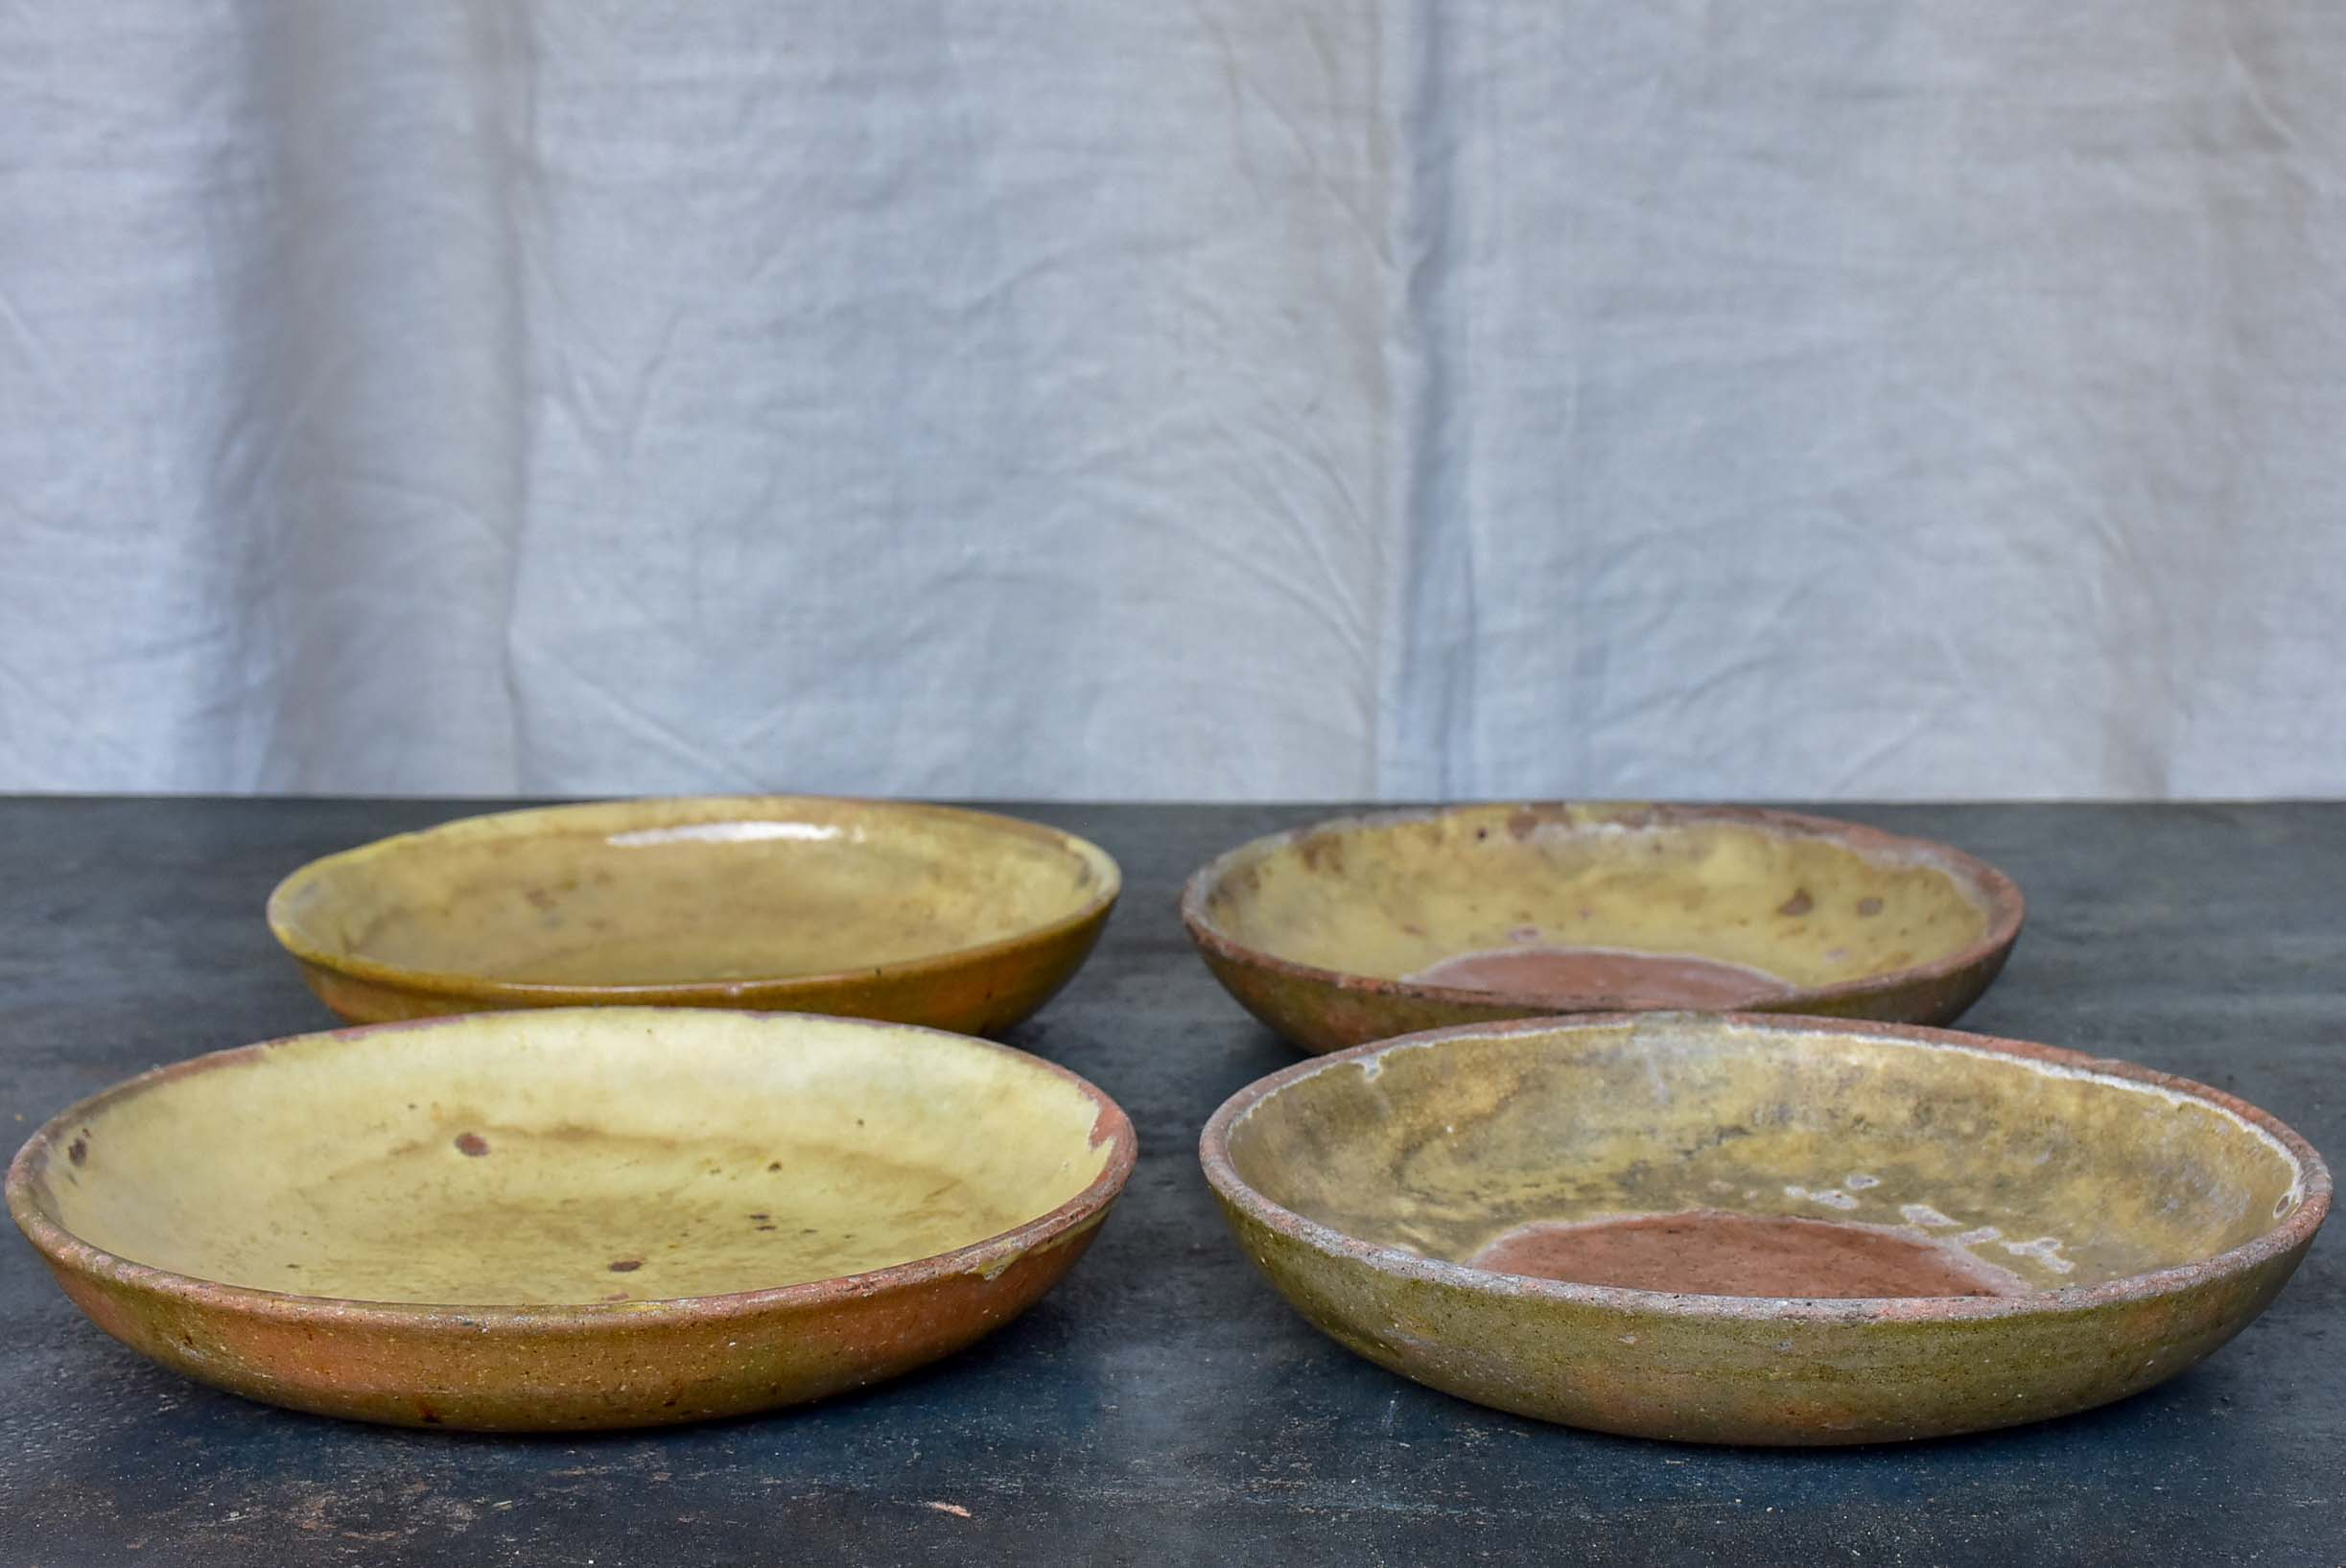 Four rustic French terracotta plates